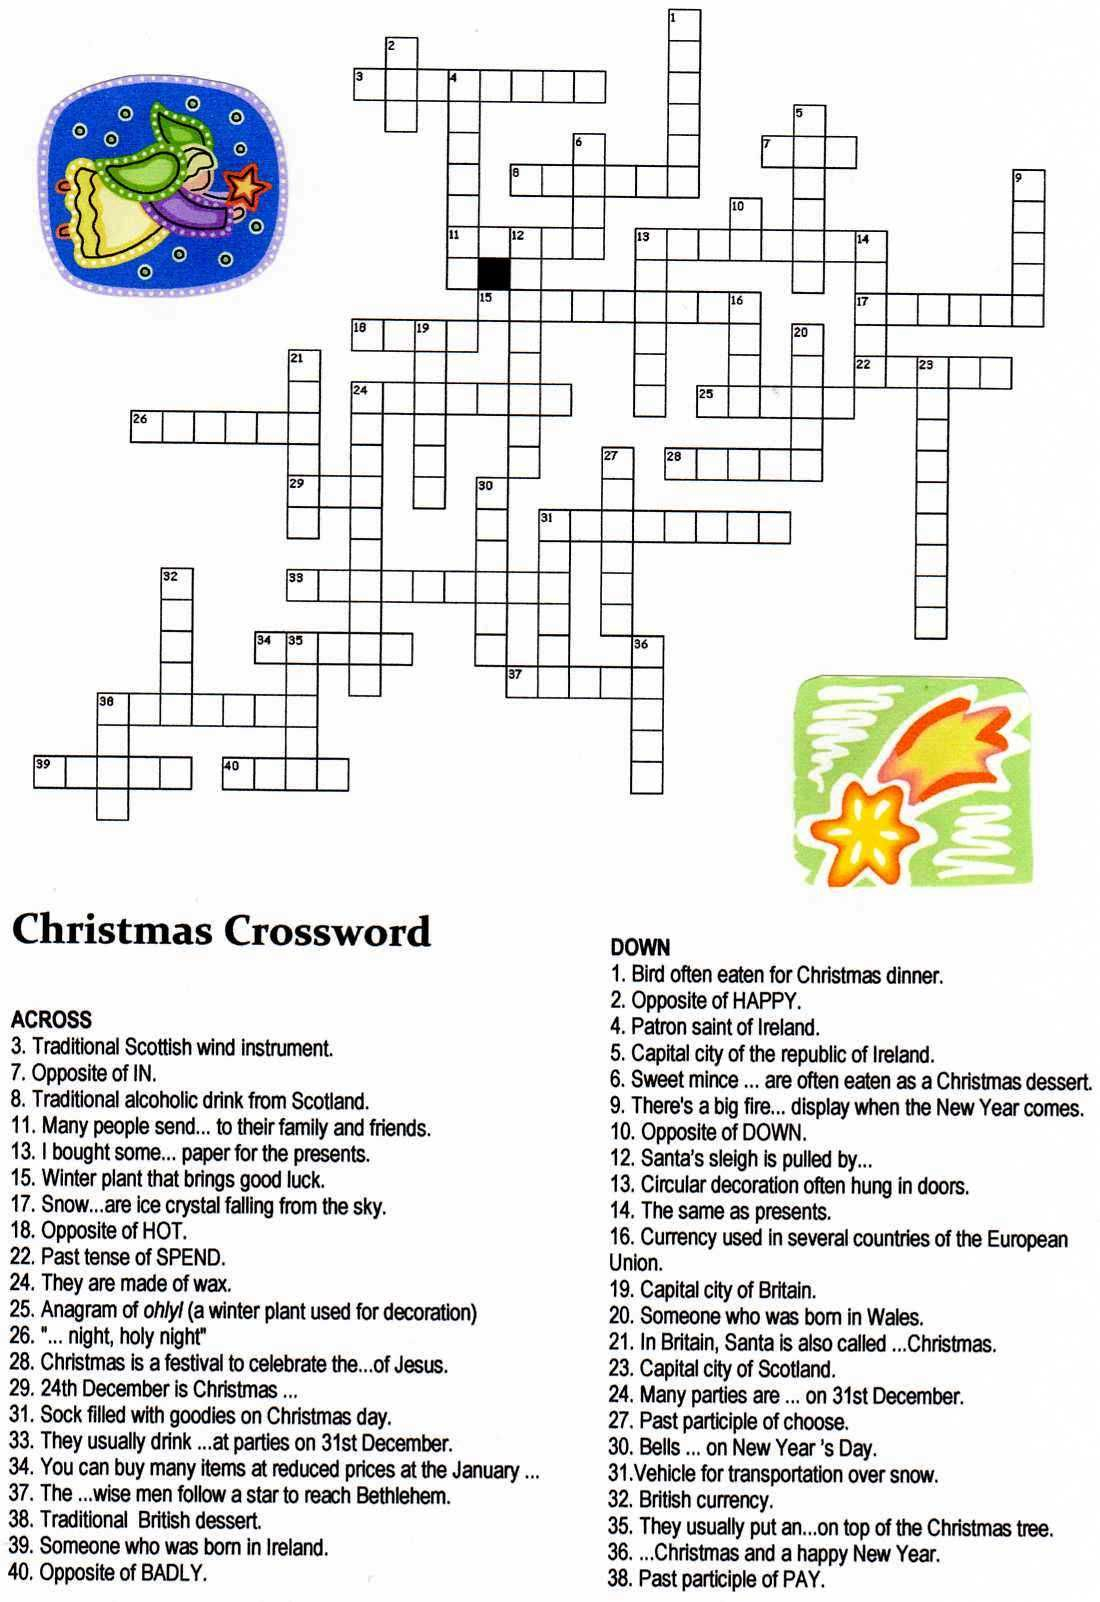 Christmas Angel Crossword Puzzle | Christmas | Christmas Crossword - Printable Hanukkah Crossword Puzzles